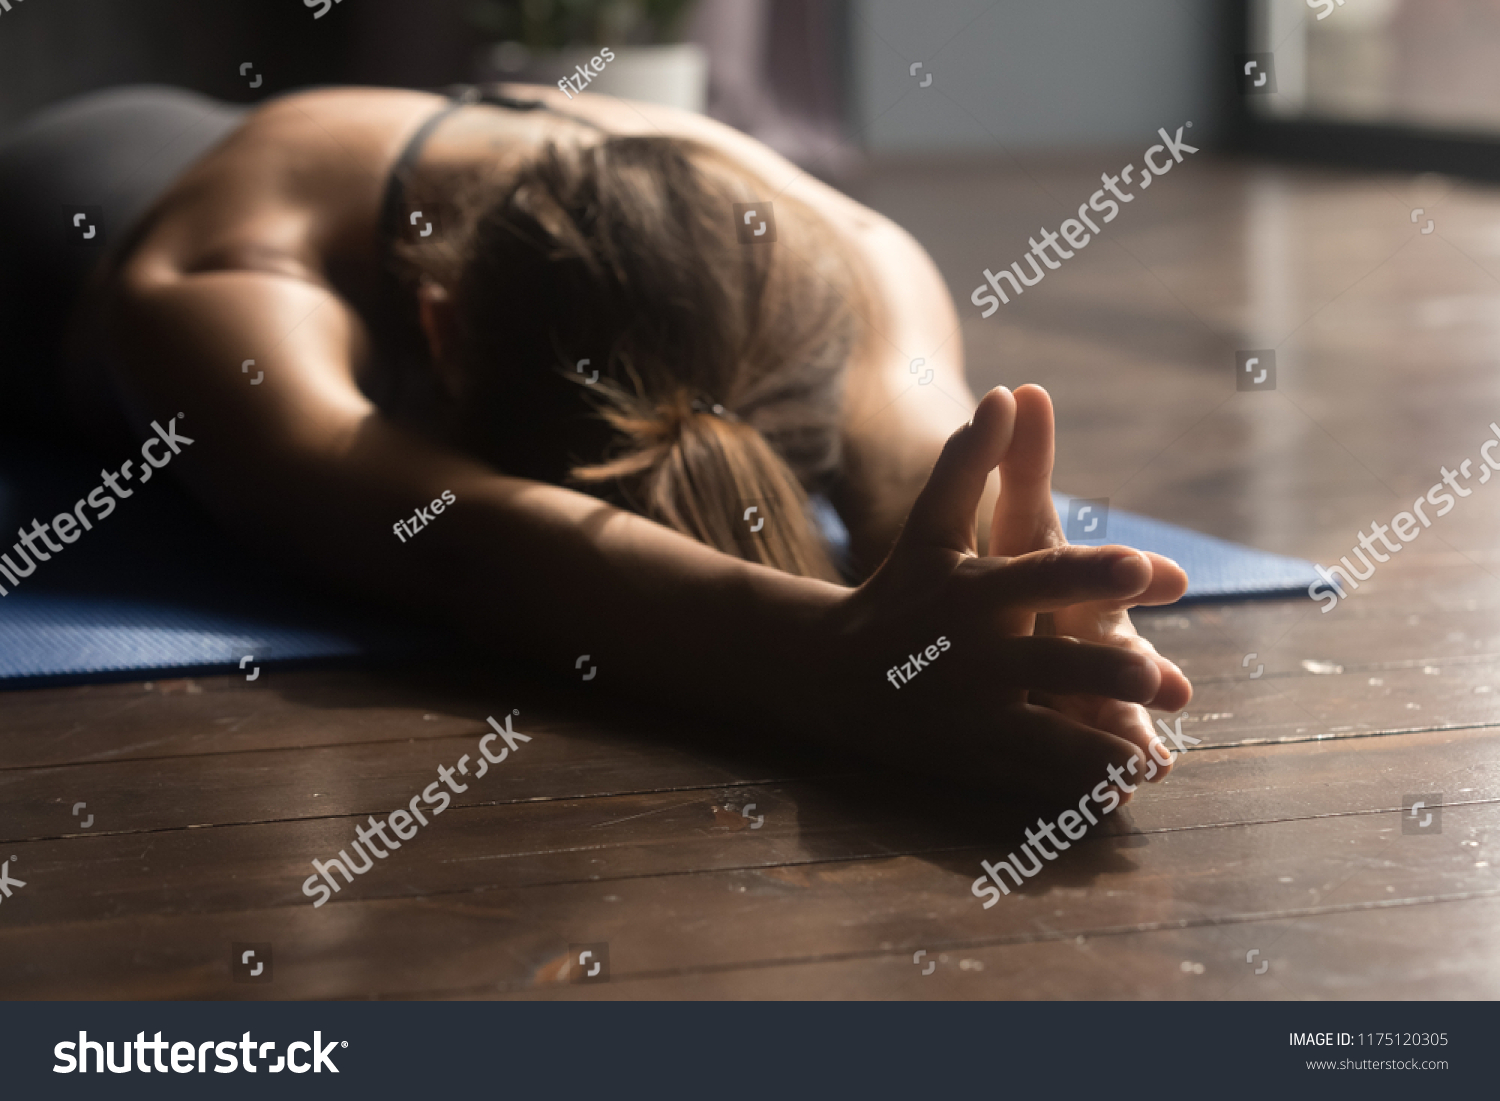 Young sporty attractive woman practicing yoga, doing breathing exercise, relaxation pose, working out, wearing sportswear, indoor close up, yoga studio